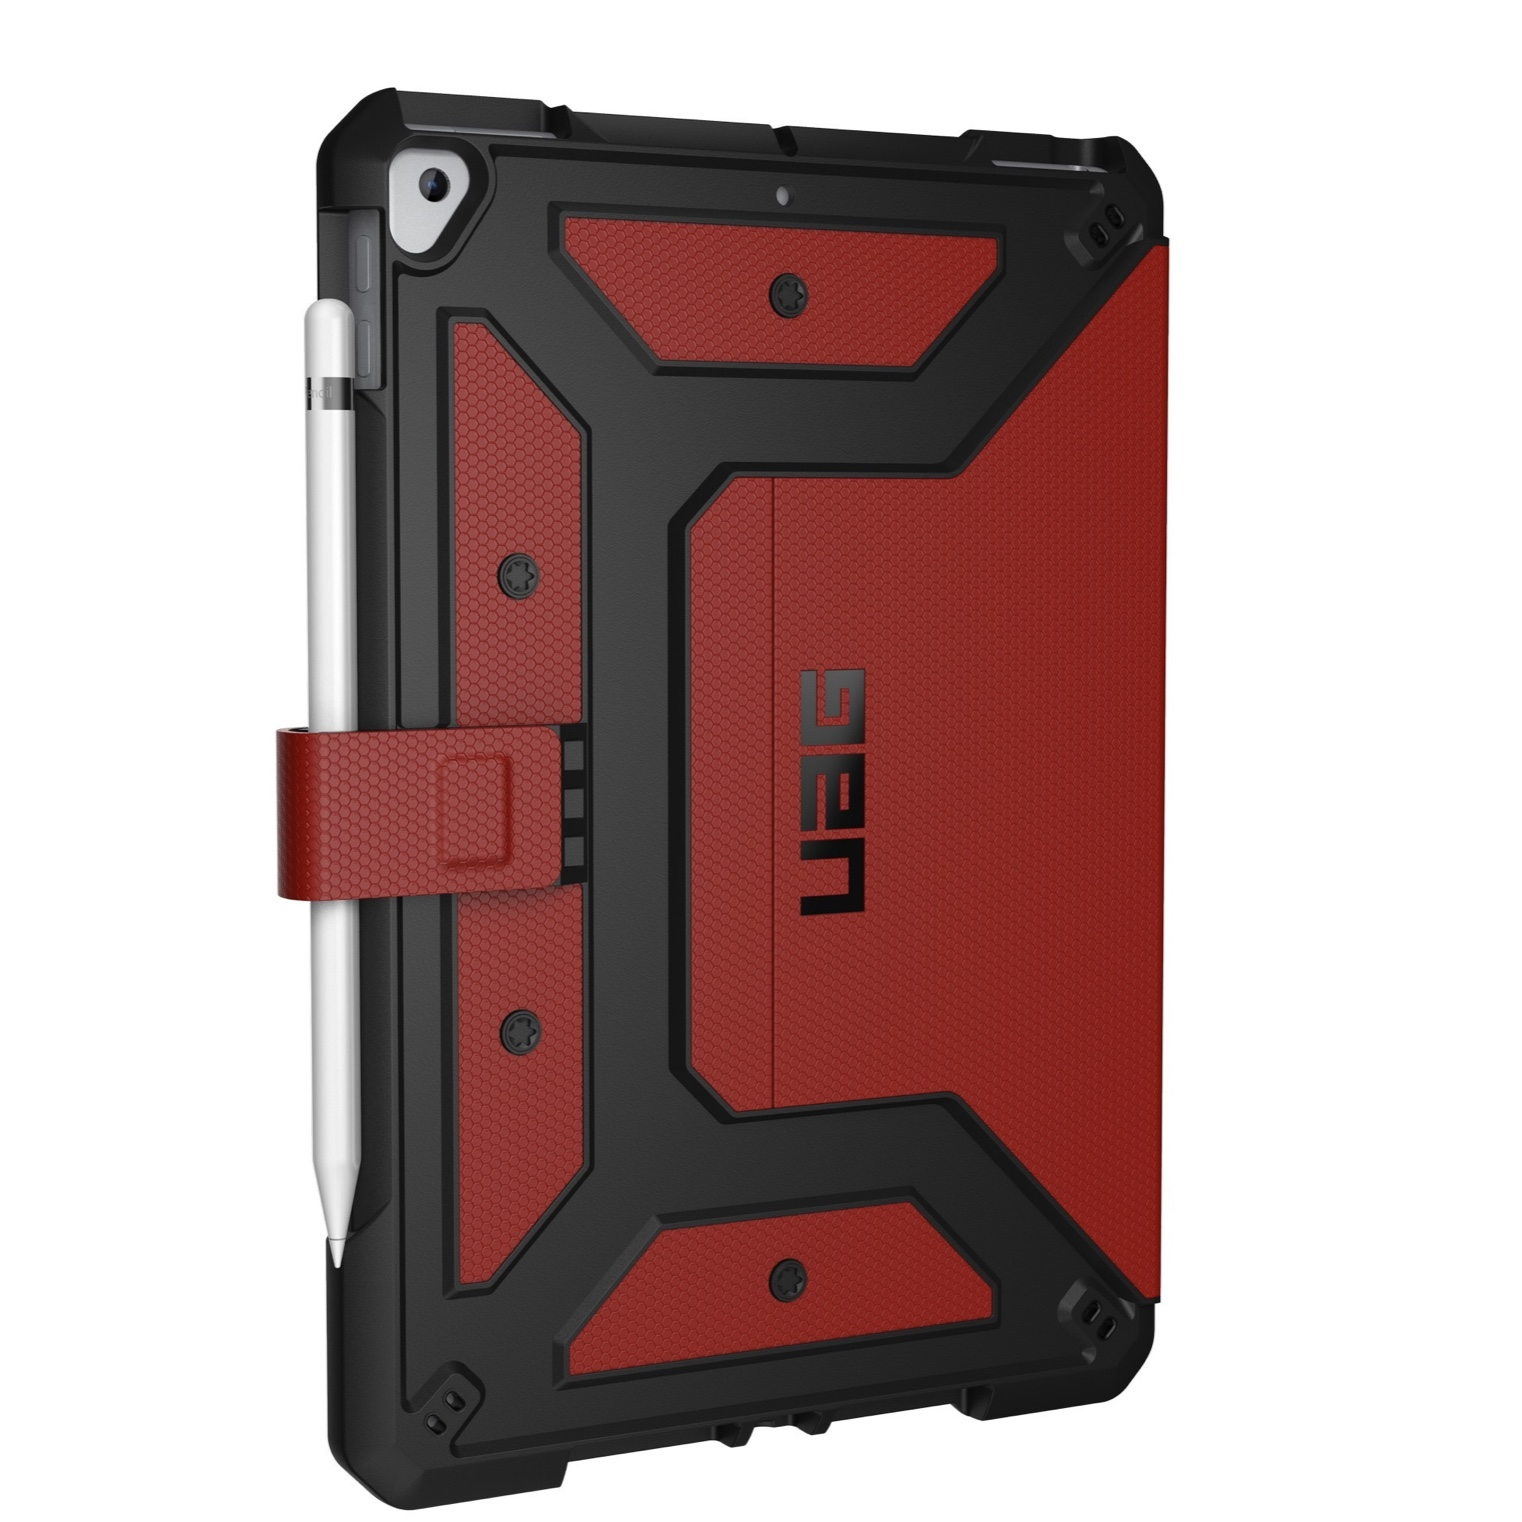 Etui Folio renforce Protection New iPAD 10.2 Armure